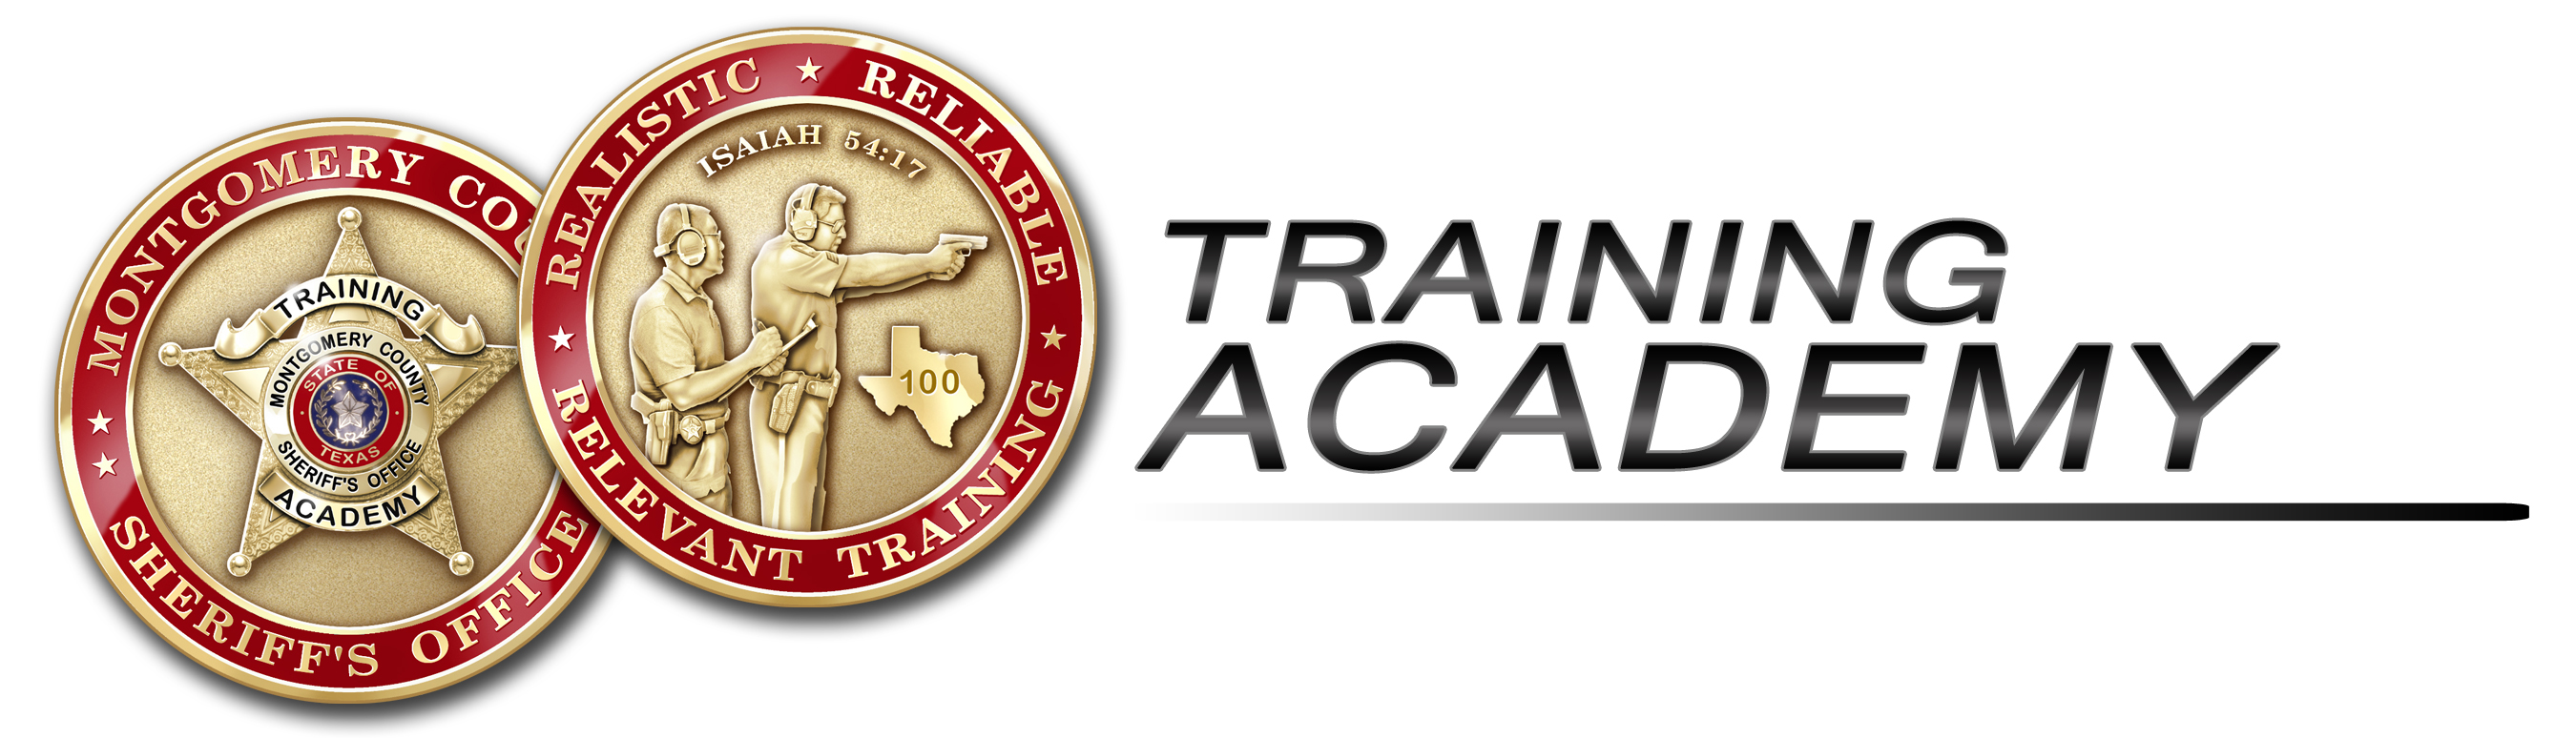 The montgomery county sheriff rsquo s office training academy is a trainingacademy1 1betcityfo Images